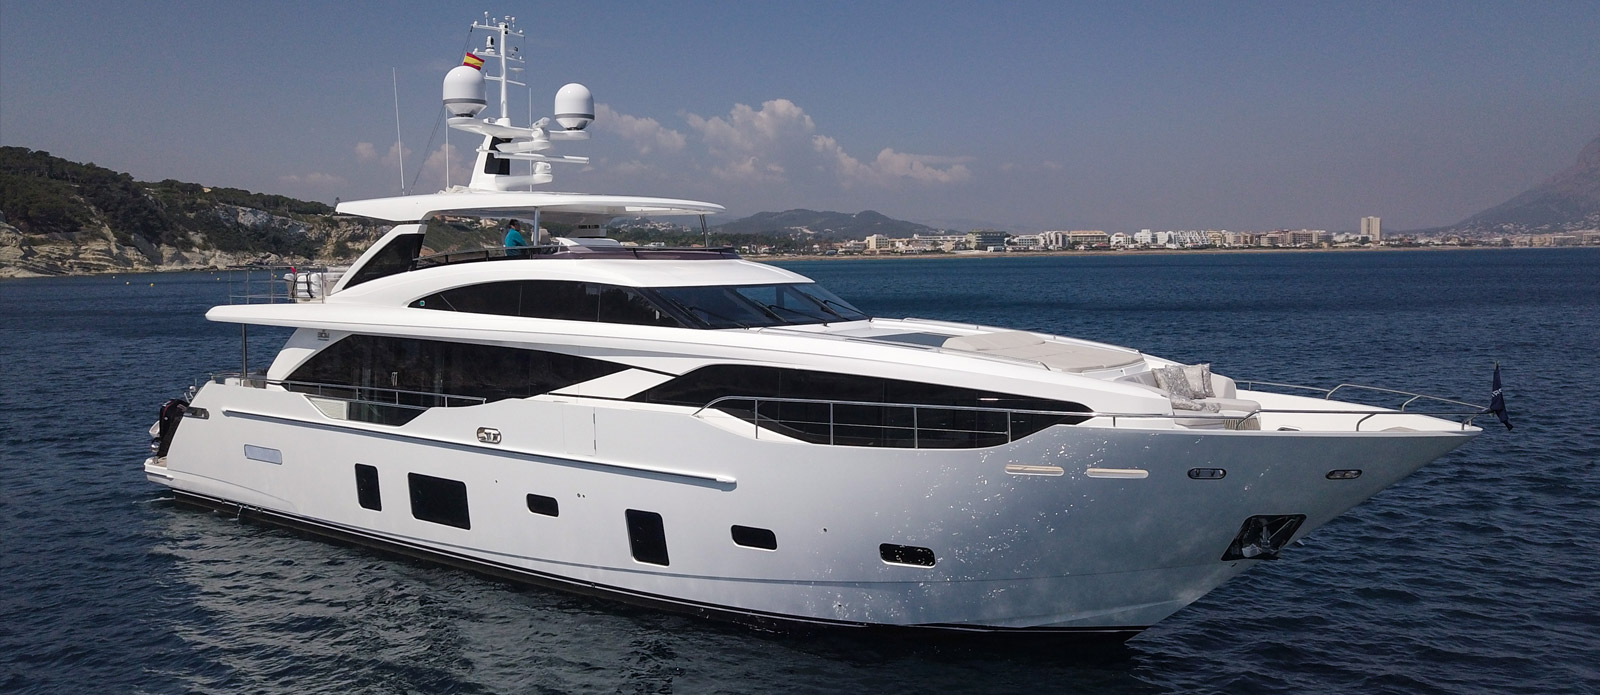 Princess 30 Metre Yacht at Anchor